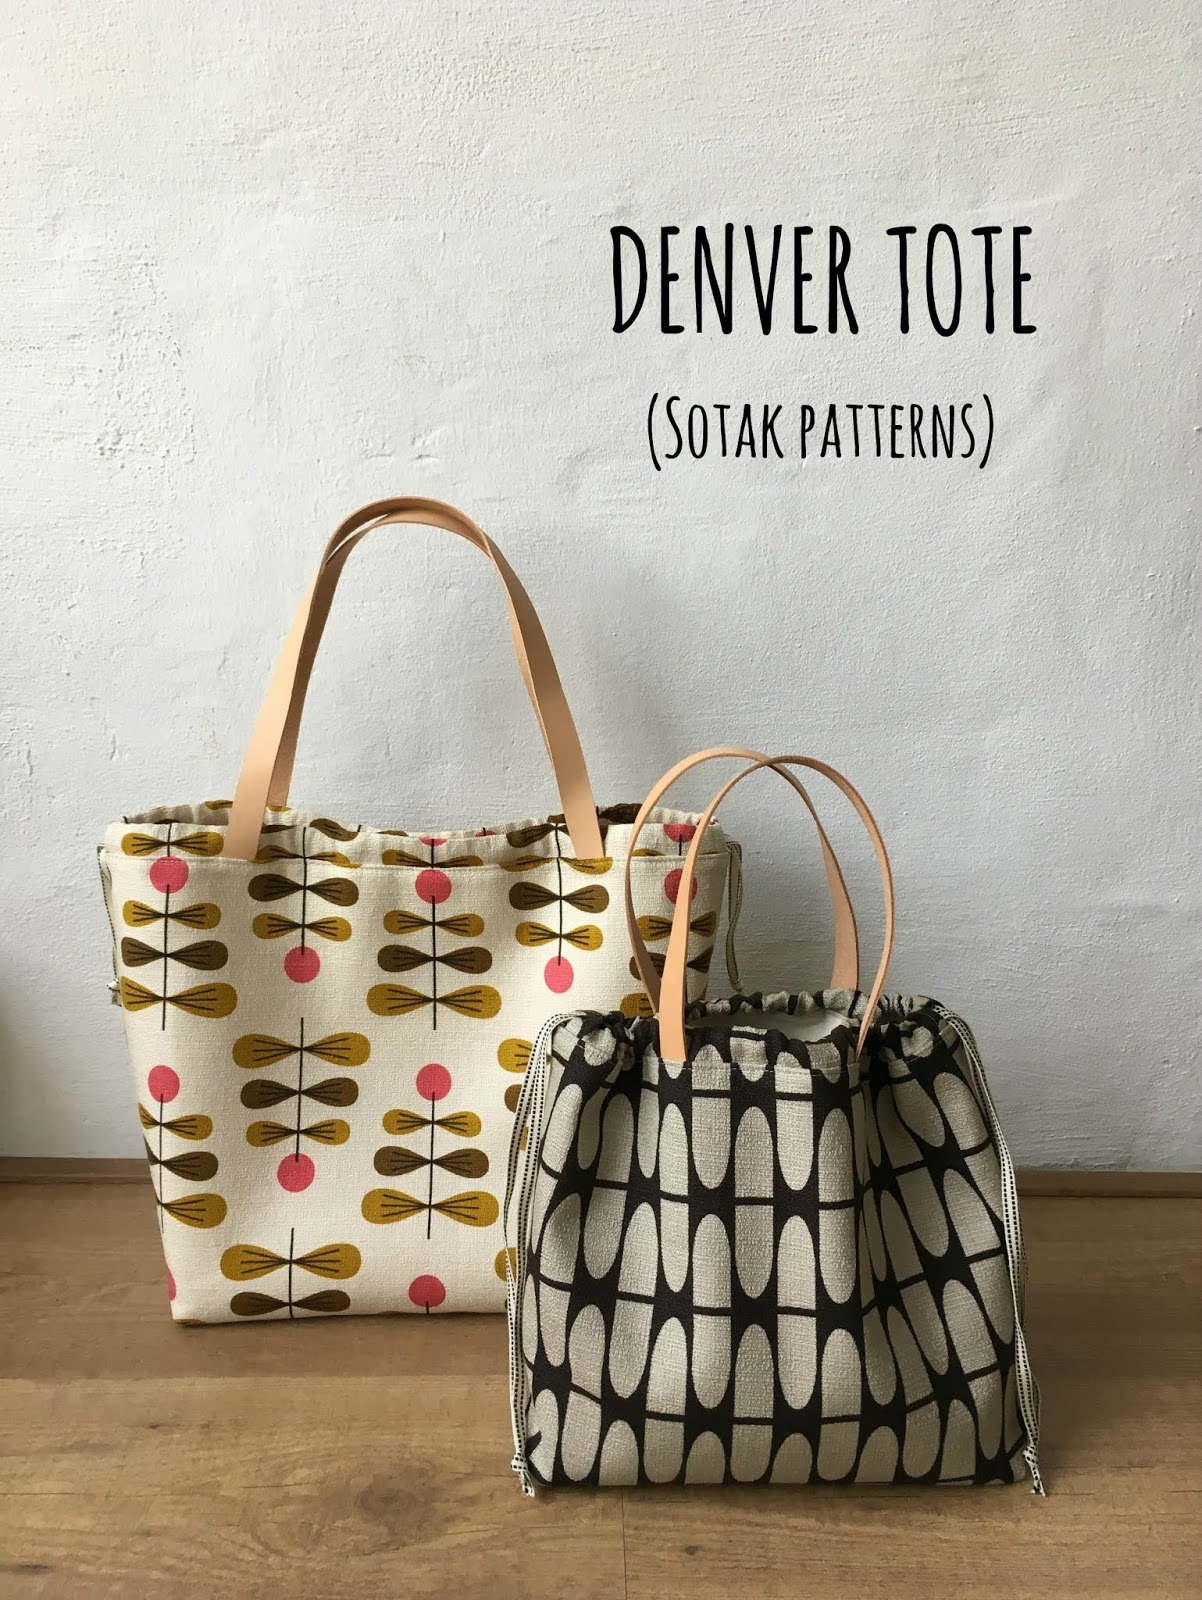 94f2c60af496 Denver Tote comes in two sizes and not only does it make a perfectly  stylish everyday tote bag